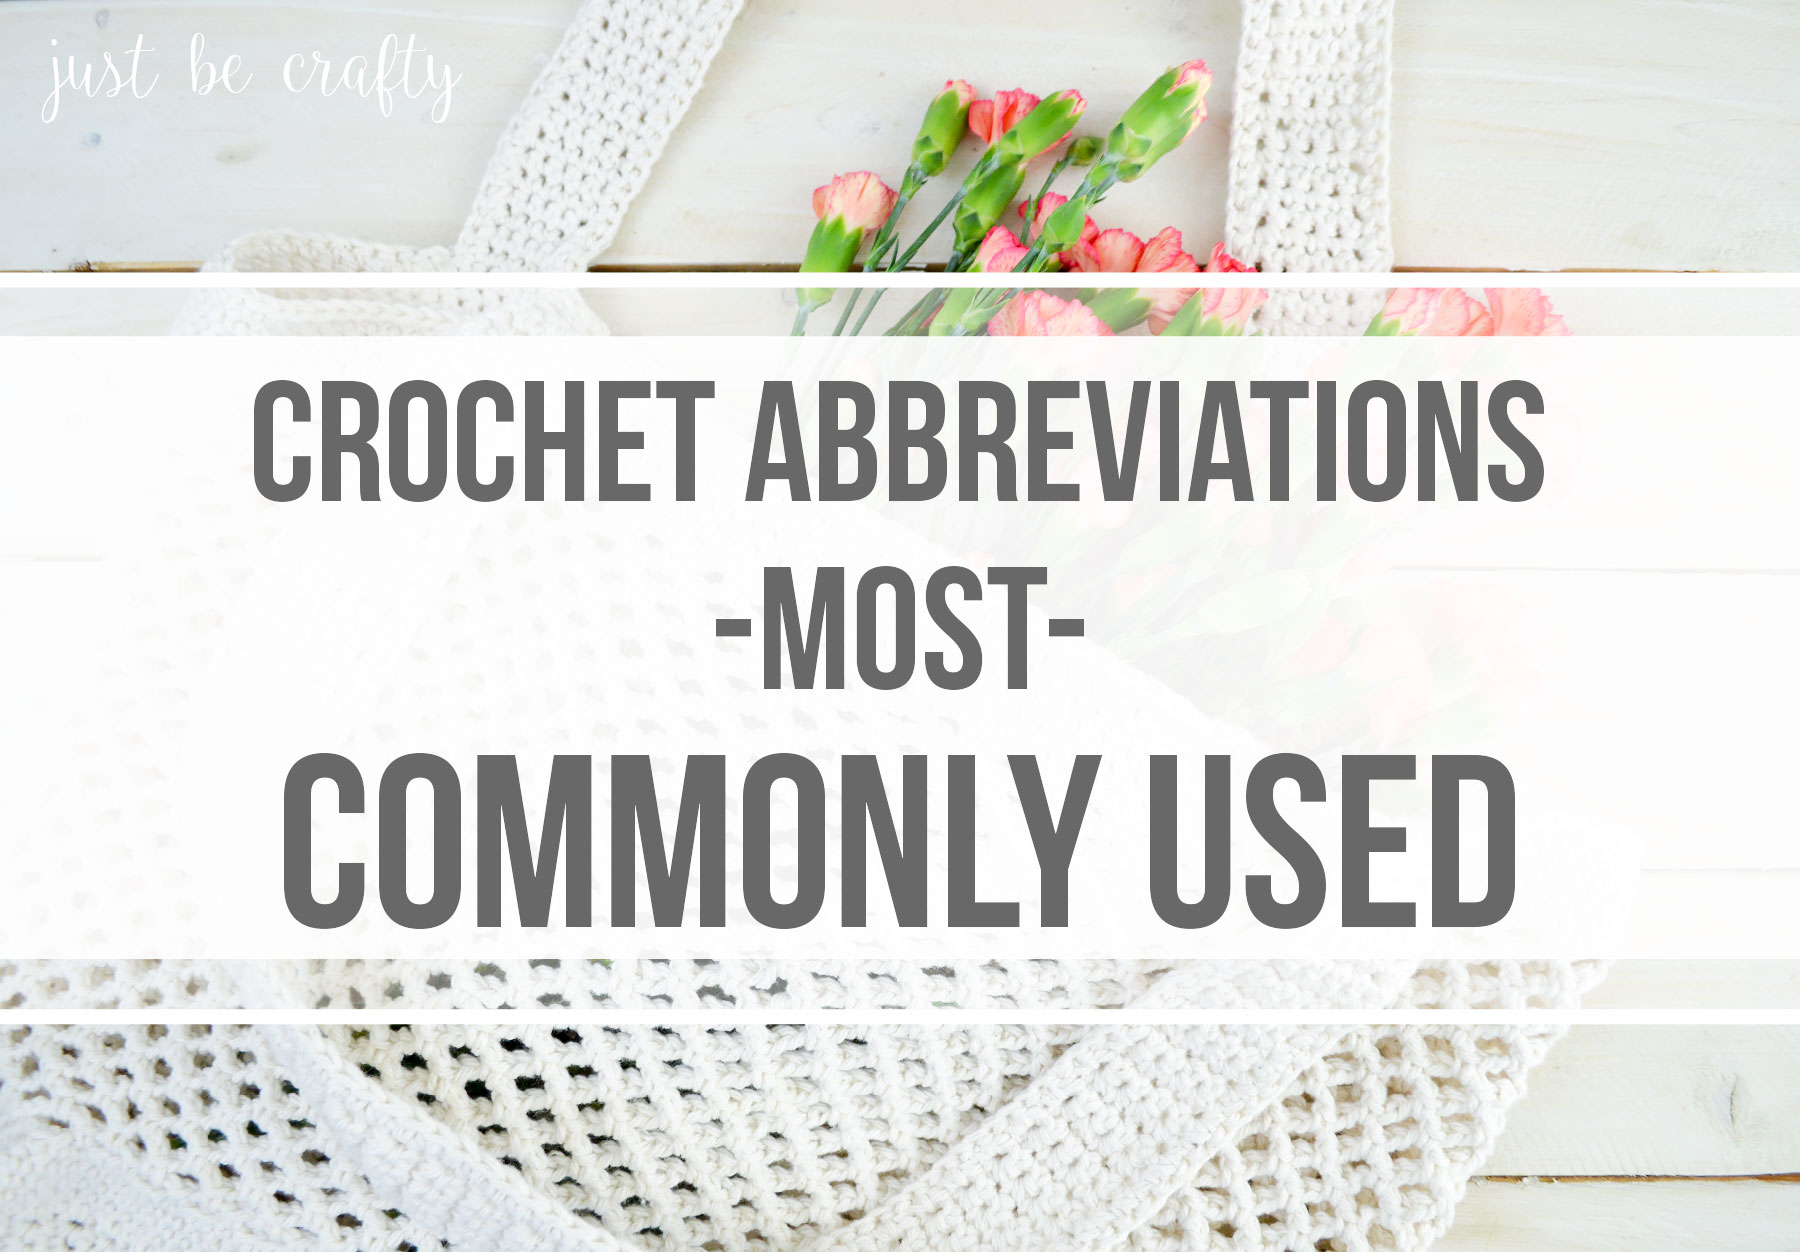 Most Commonly Used Crochet Abbreviations - Just Be Crafty